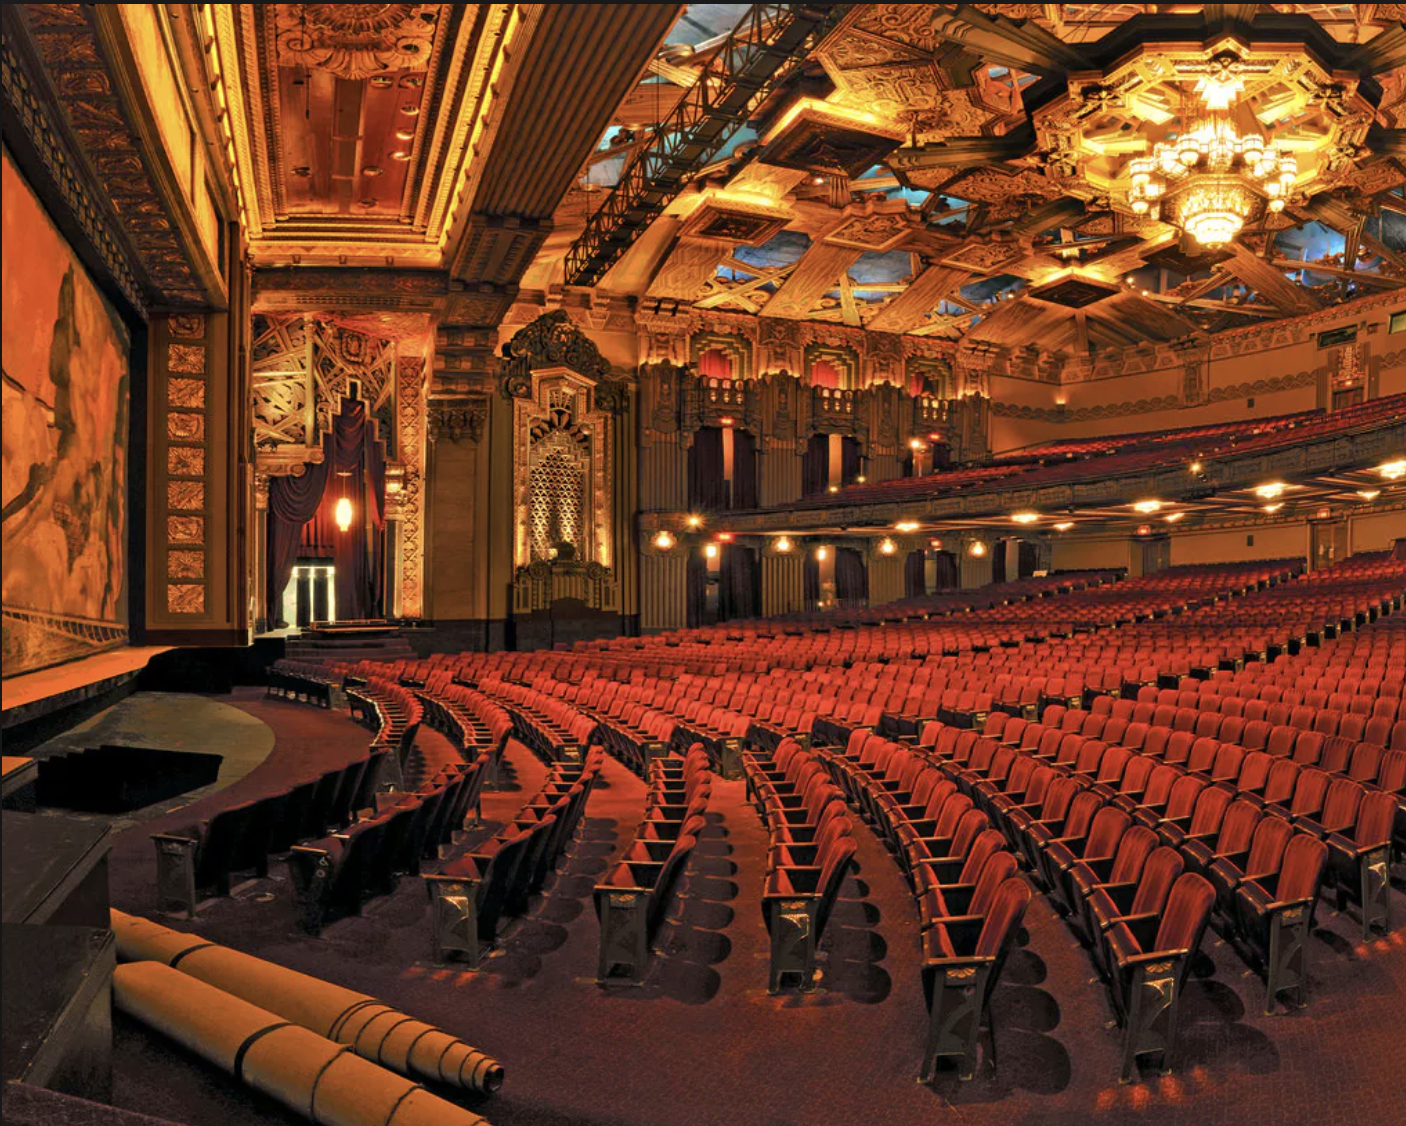 Give mom the gift of a night out at the theater with one of the most famous musicals in recent history, playing live at the Pantages Theatre in Hollywood.   Les Miserables  Hollywood Pantages Theatre May 7 - June 2